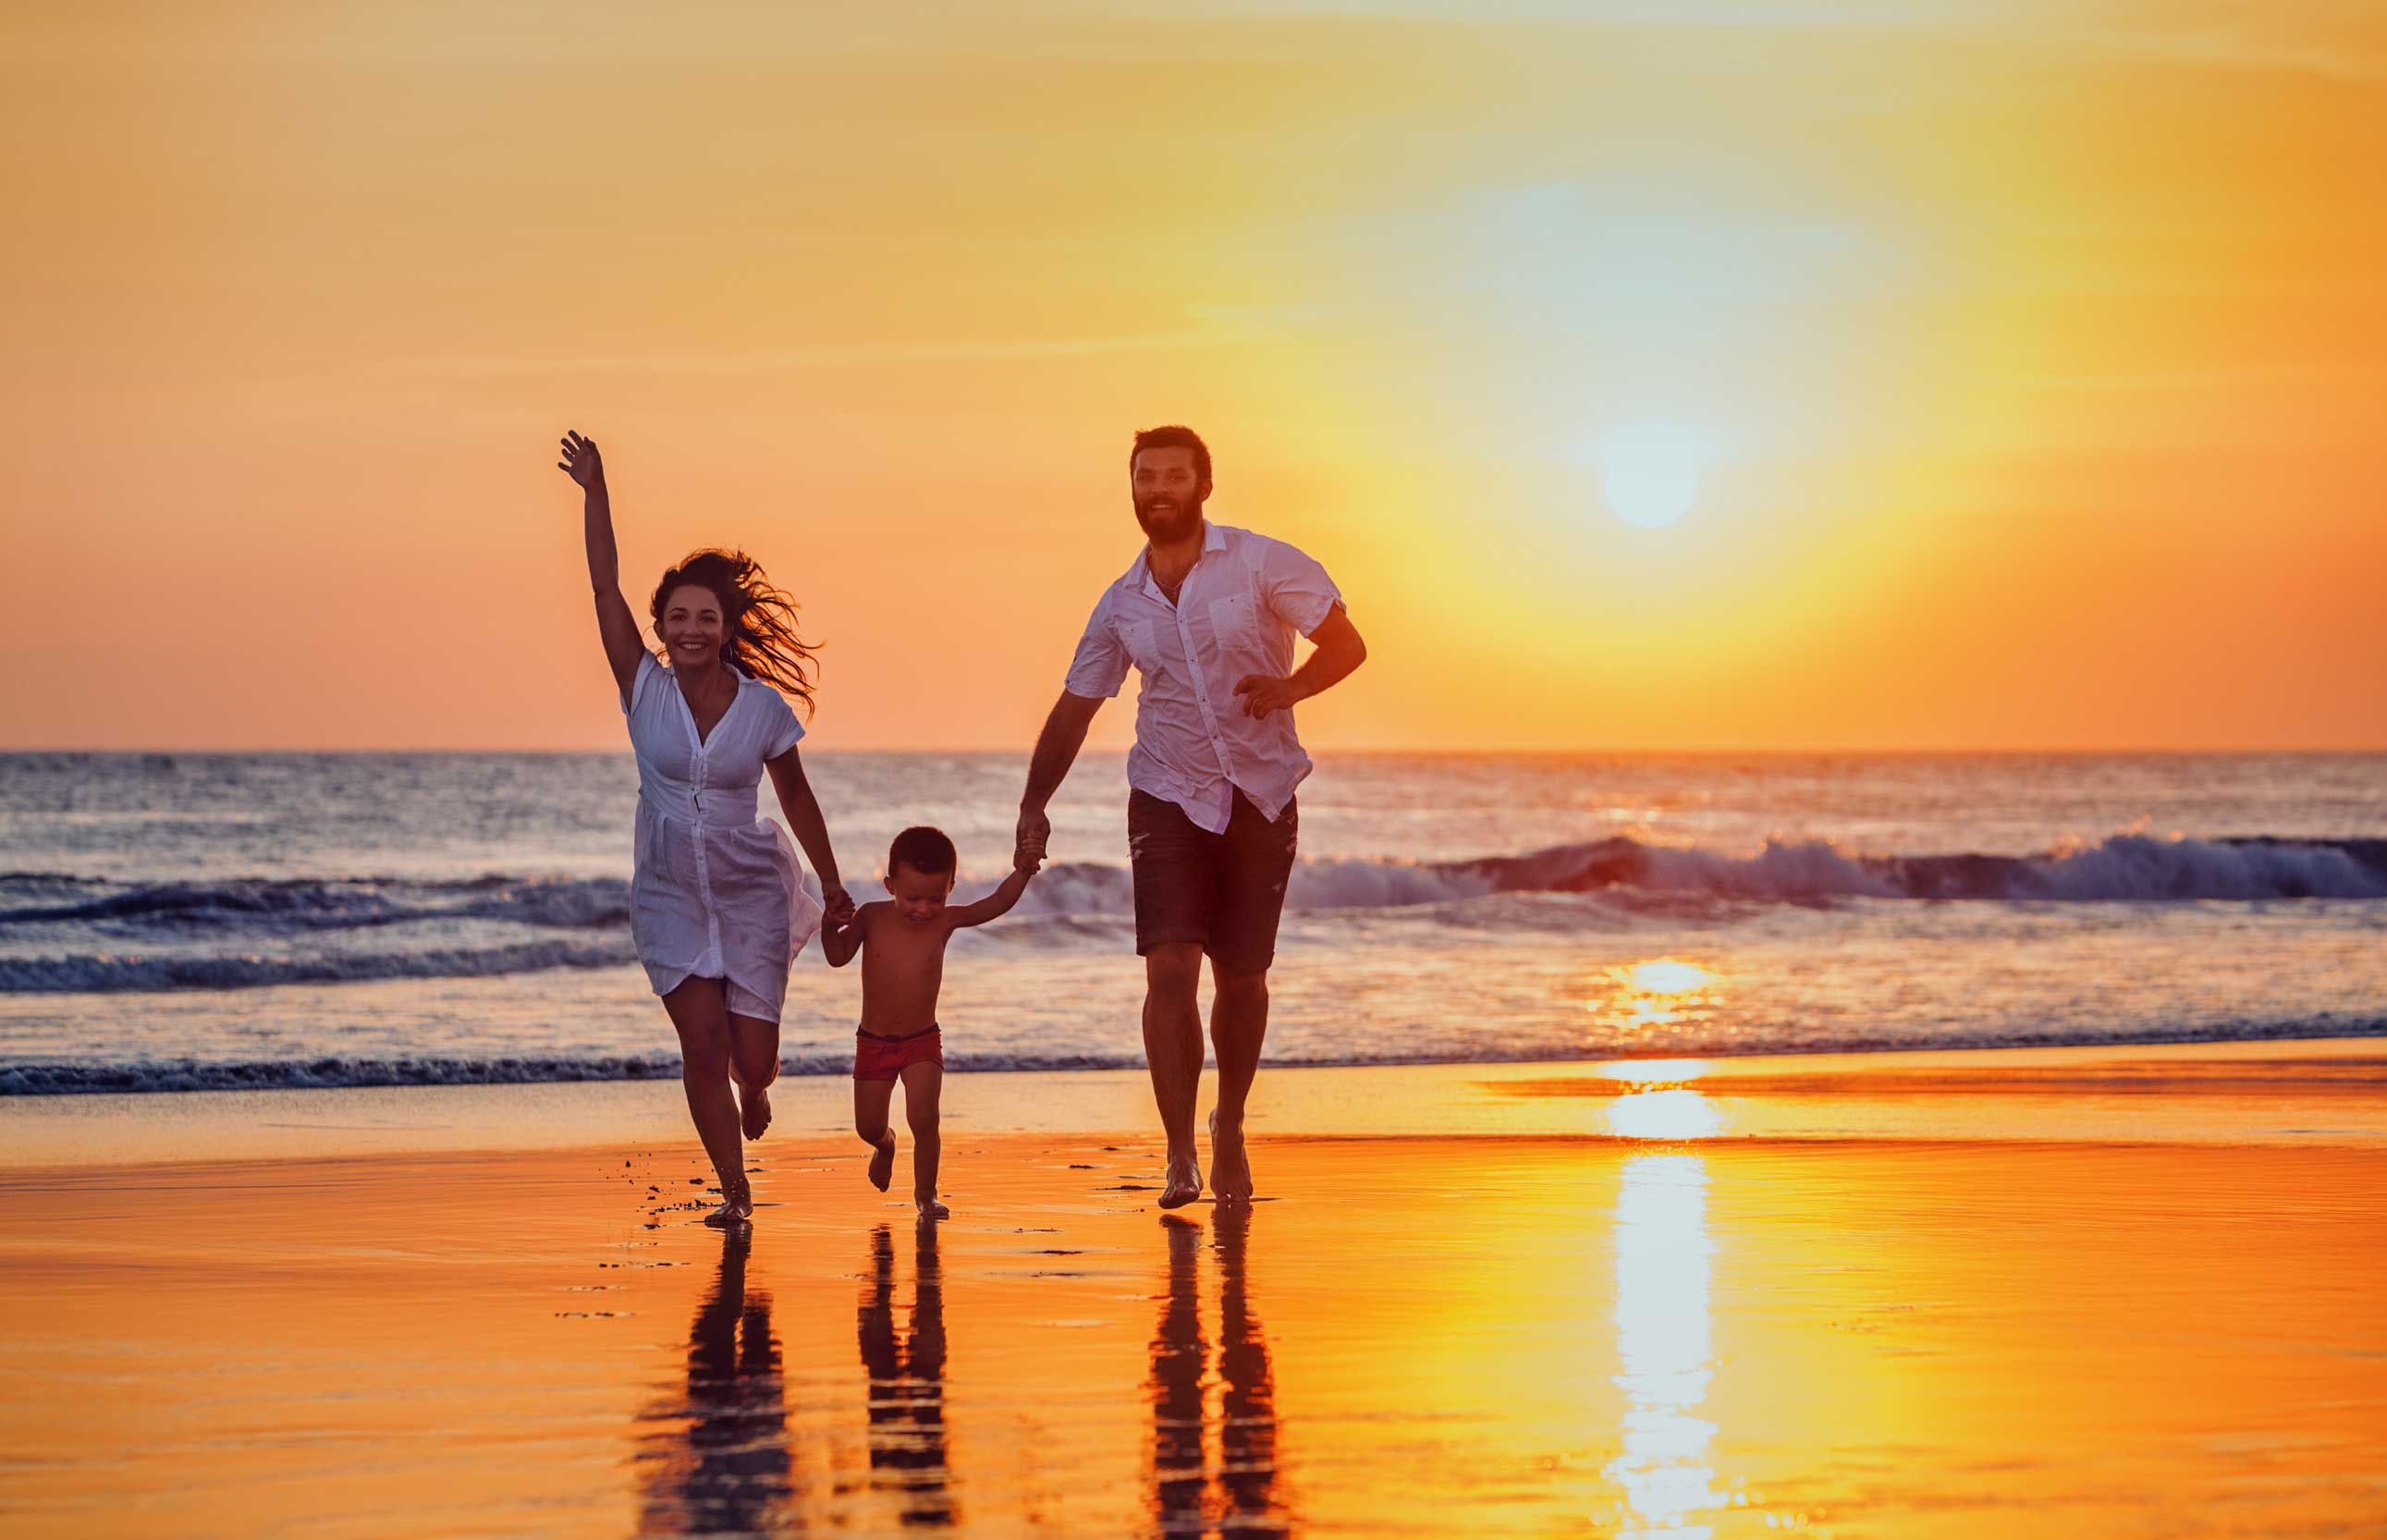 To help make a family vacation more affordable, I got the Chase Sapphire Reserve credit card and it surprisingly boosted my credit score. Here's how.